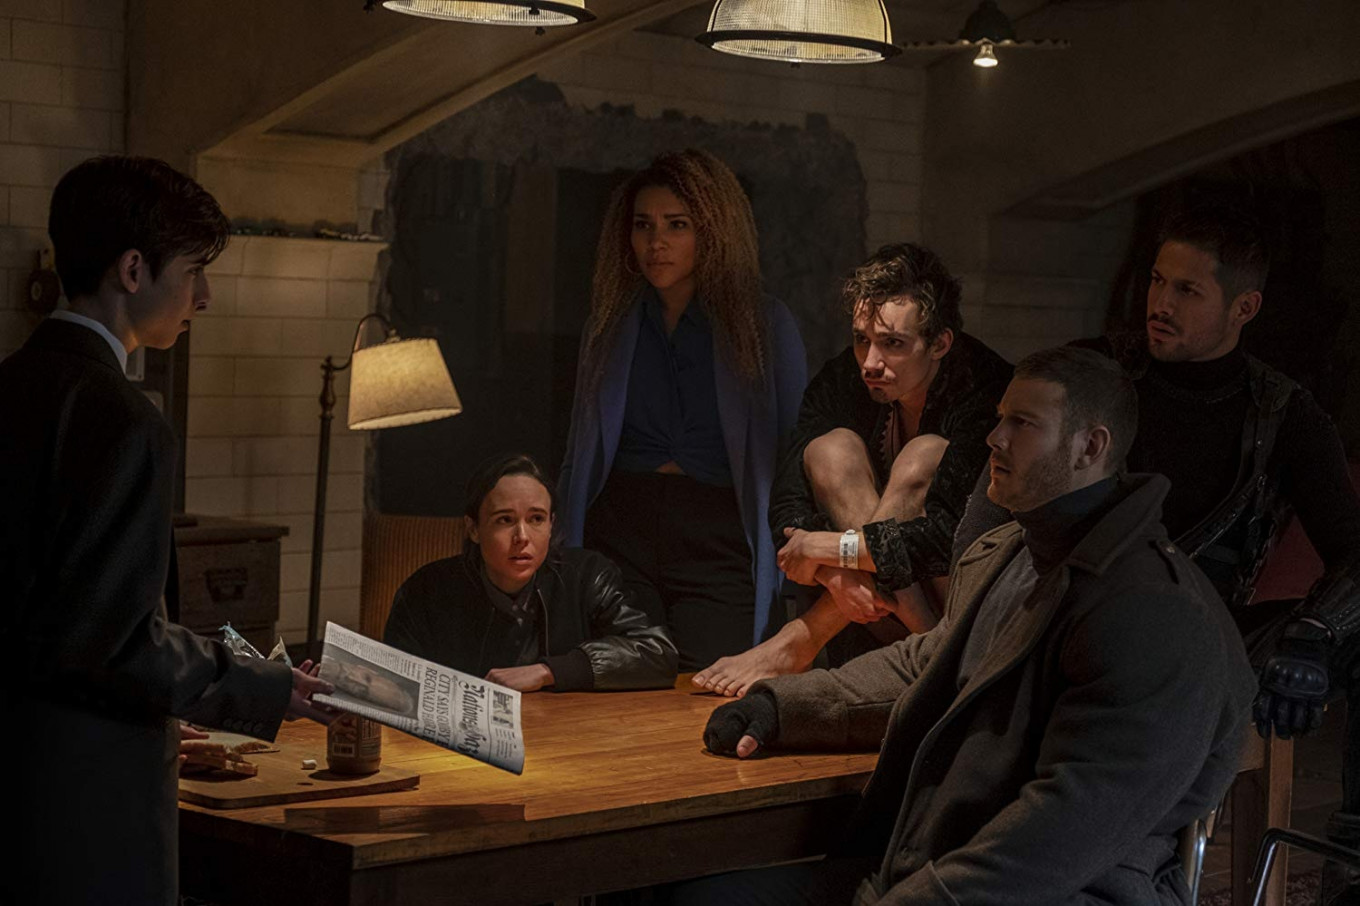 Netflix drops 'The Umbrella Academy' teaser trailer